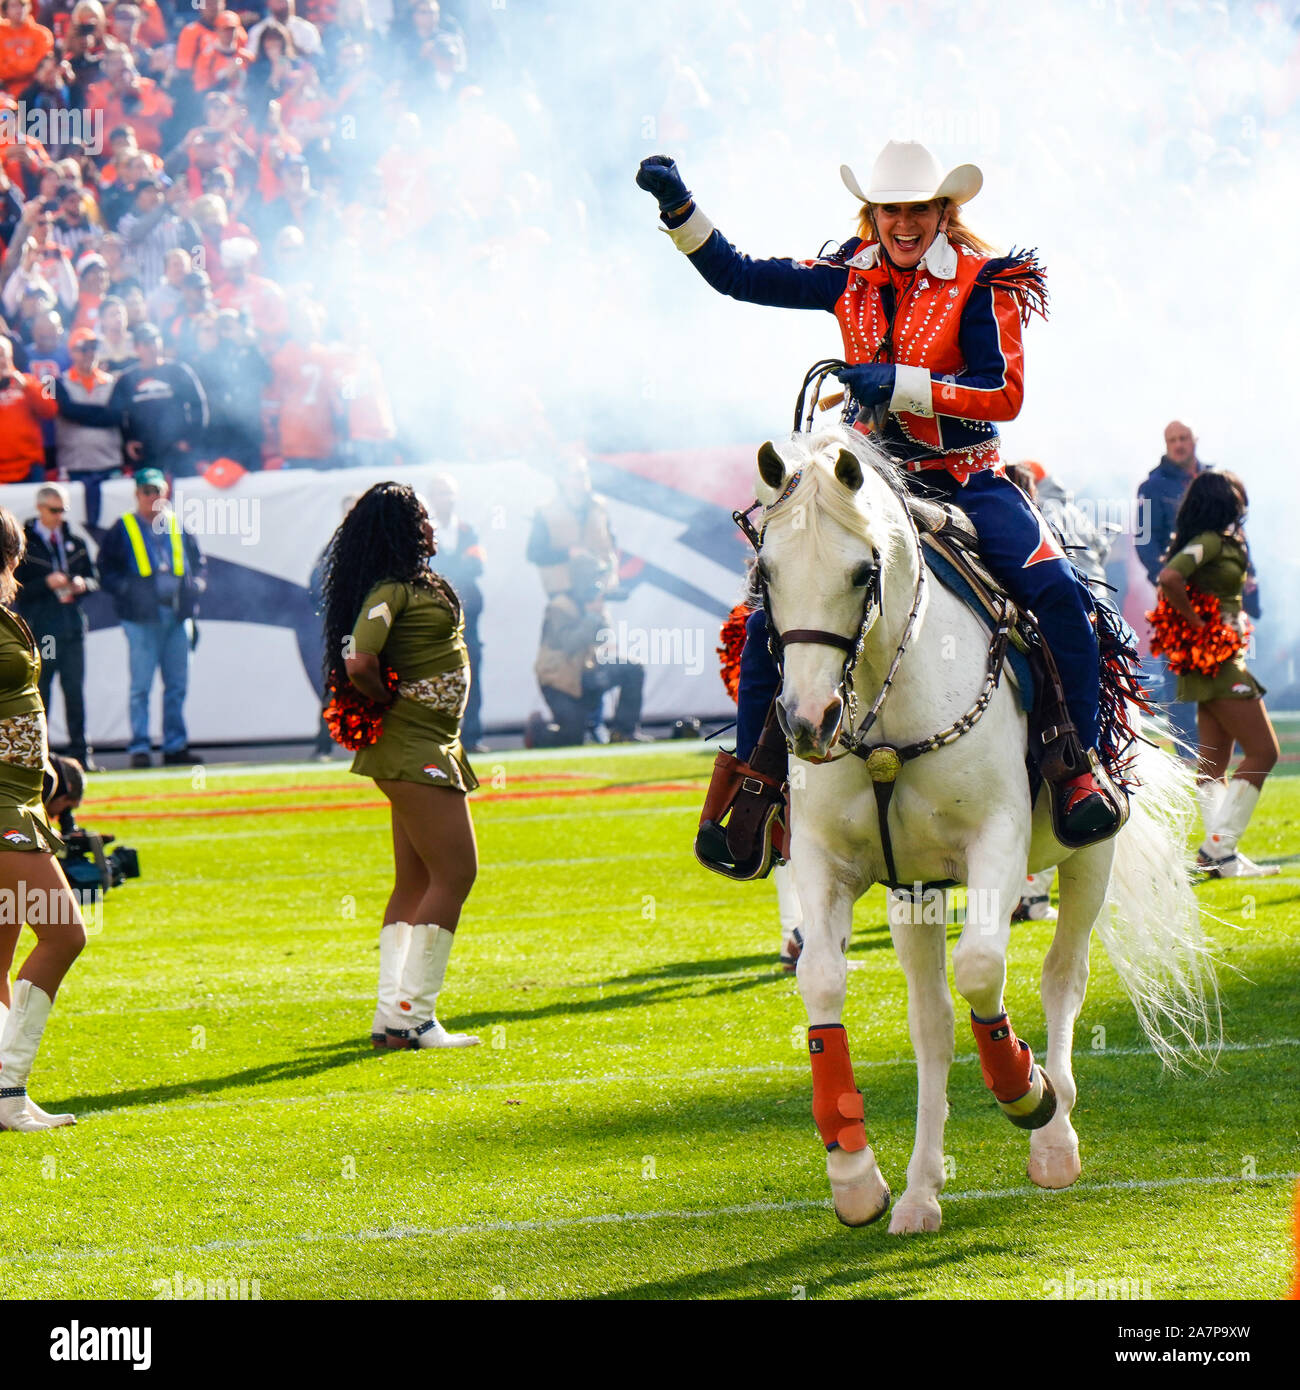 November 03, 2019: Denver Broncos mascot Thunder runs on the field before the game between Denver and Cleveland at Empower Field in Denver, CO. Denver hung on to win 24-19 to improve to 3-6. Derek Regensburger/CSM. Stock Photo